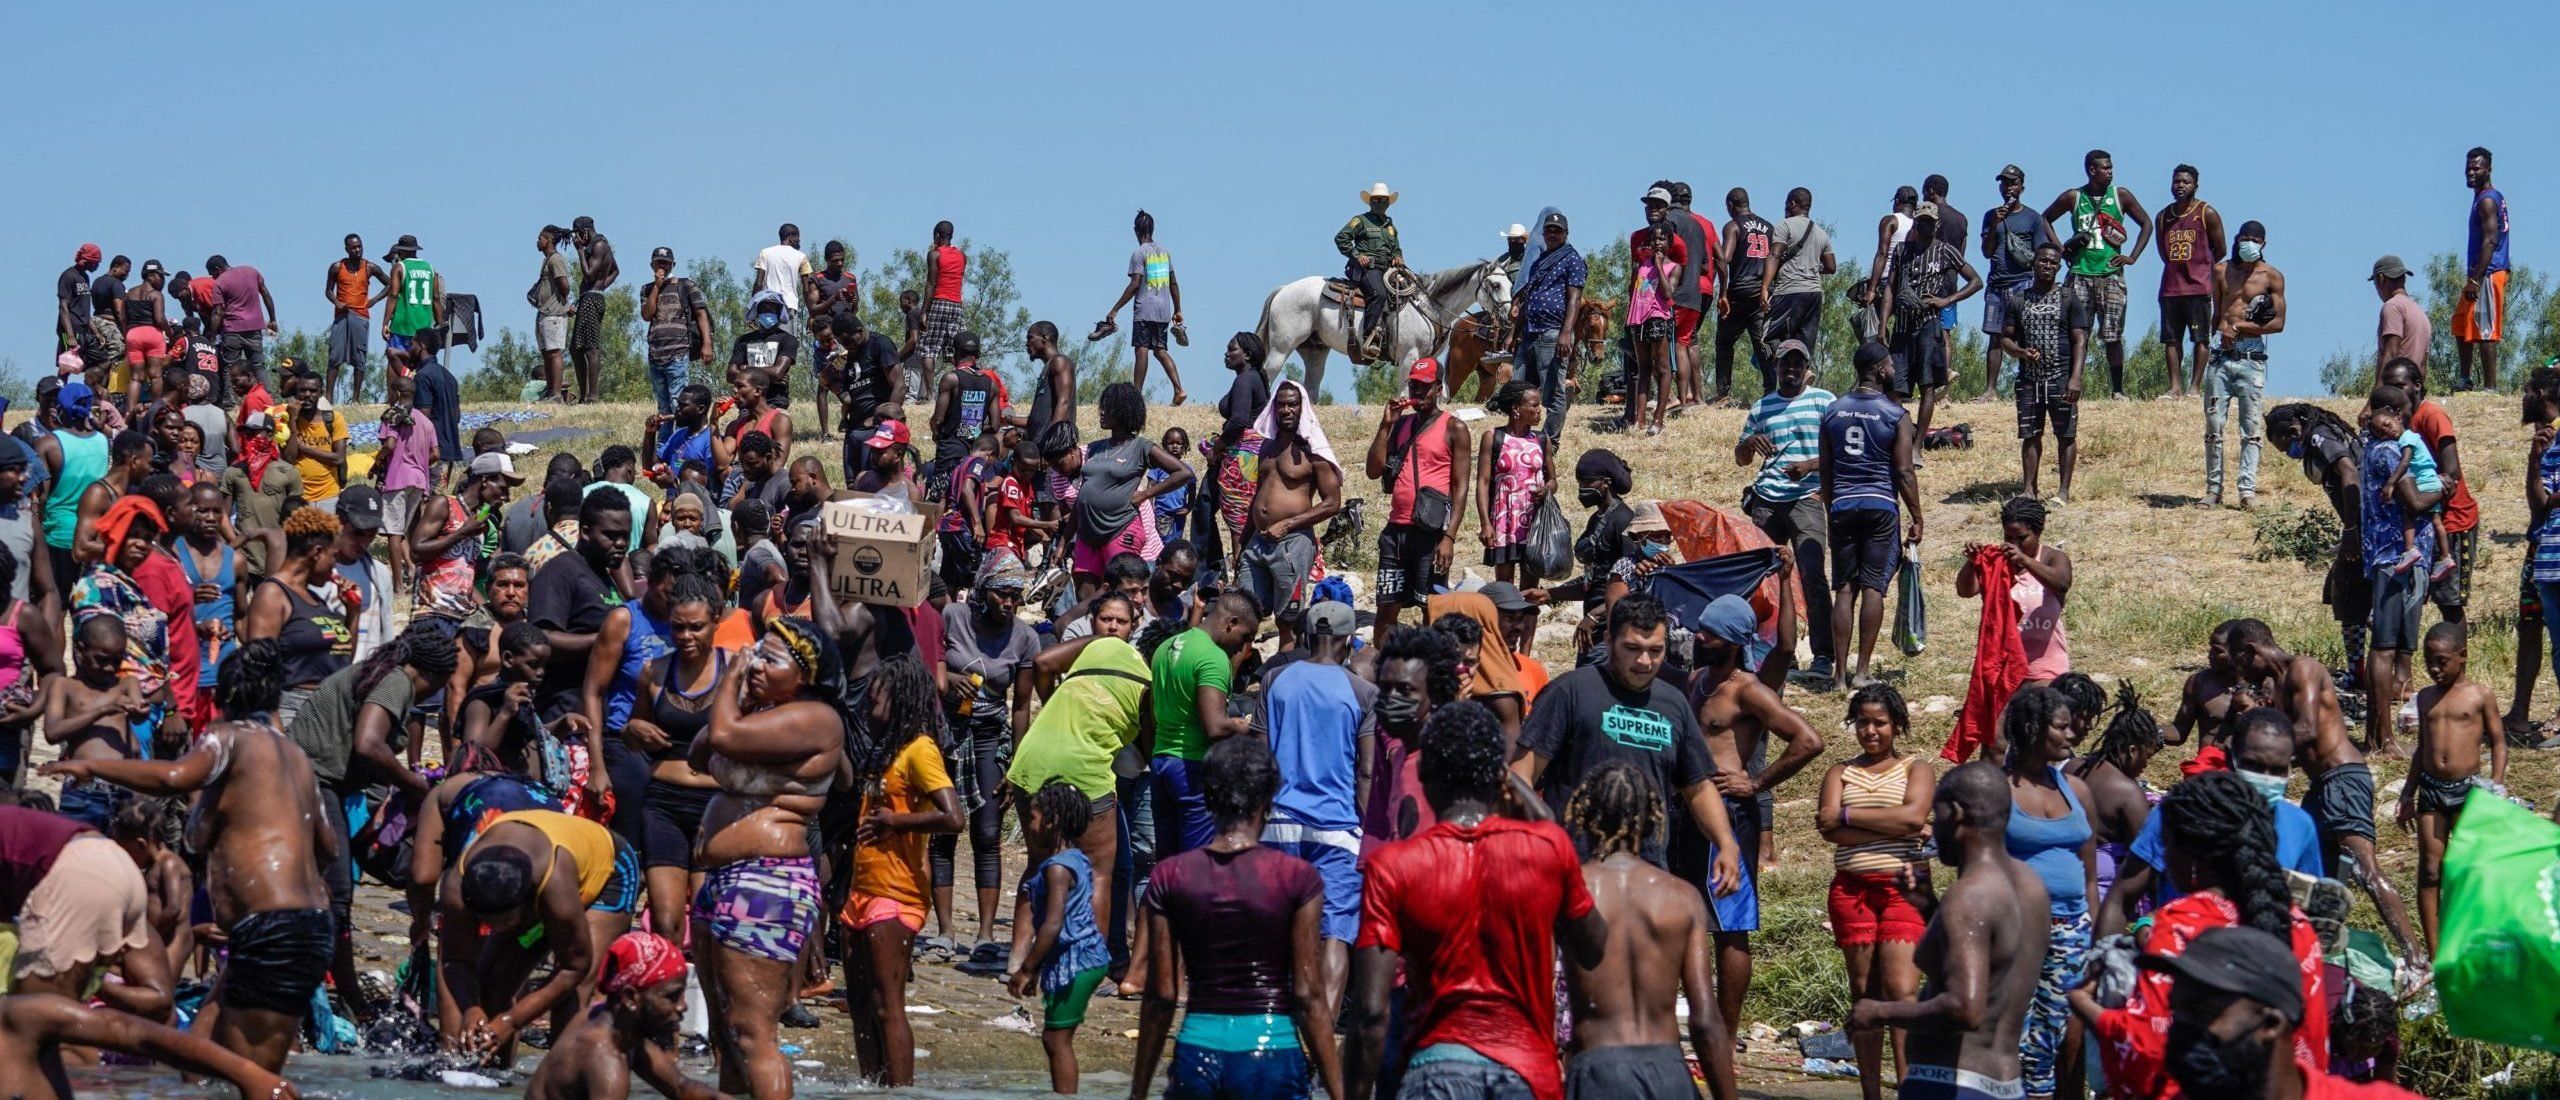 TOPSHOT - Haitian migrants, part of a group of over 10,000 people staying in an encampment on the US side of the border, cross the Rio Grande river to get food and water in Mexico, after another crossing point was closed near the Acuna Del Rio International Bridge in Del Rio, Texas on September 19, 2021. - The United States said Saturday it would ramp up deportation flights for thousands of migrants who flooded into the Texas border city of Del Rio, as authorities scramble to alleviate a burgeoning crisis for President Joe Biden's administration. (Photo by PAUL RATJE / AFP) (Photo by PAUL RATJE/AFP via Getty Images)